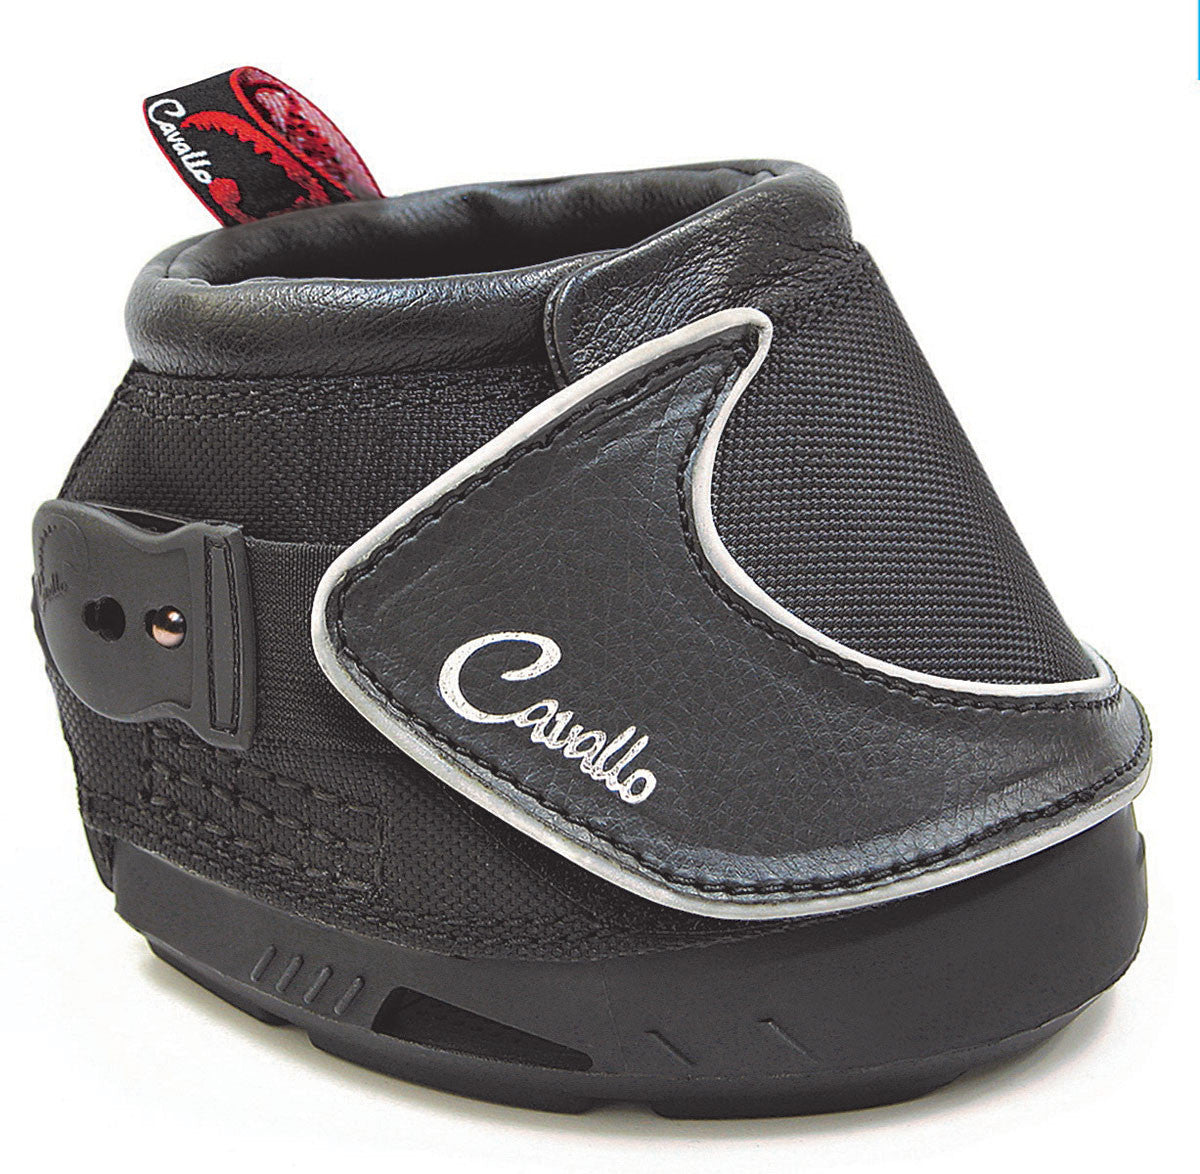 Cavallo Sport Regular Sole Hoof Boot_1